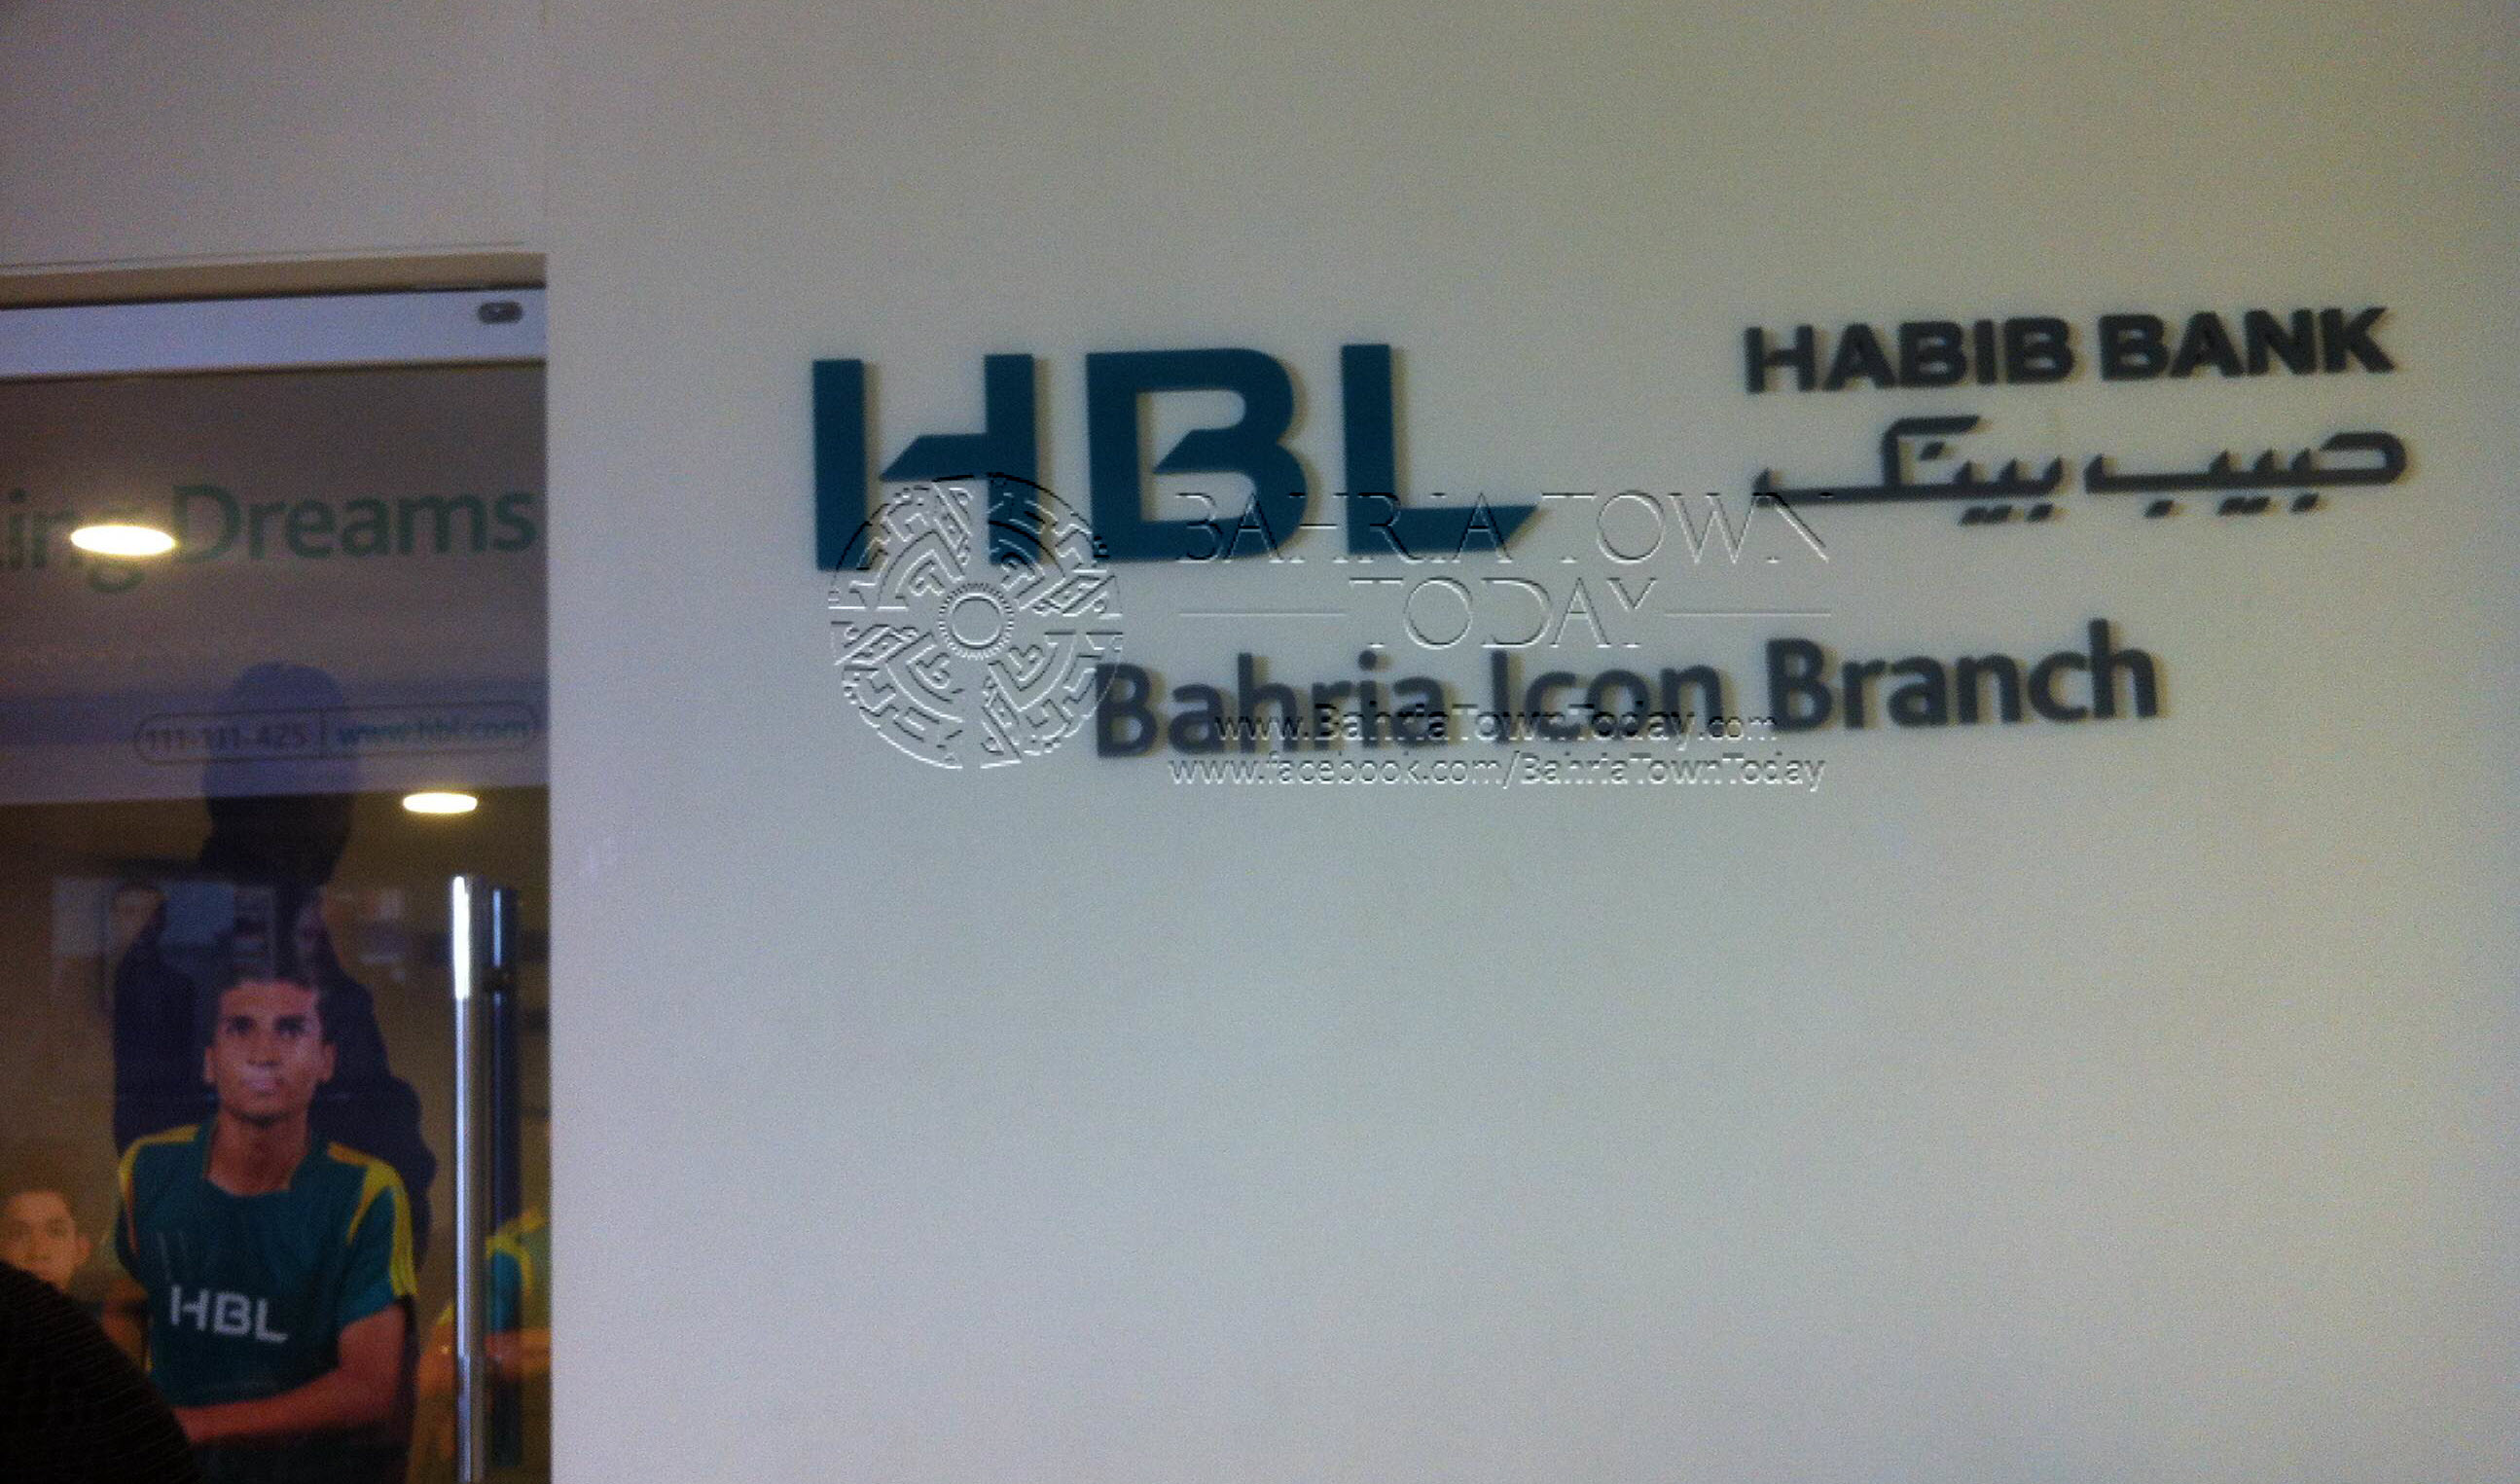 HBL Update: Habib Bank Limited (HBL) Opens New Branch At Bahria Town